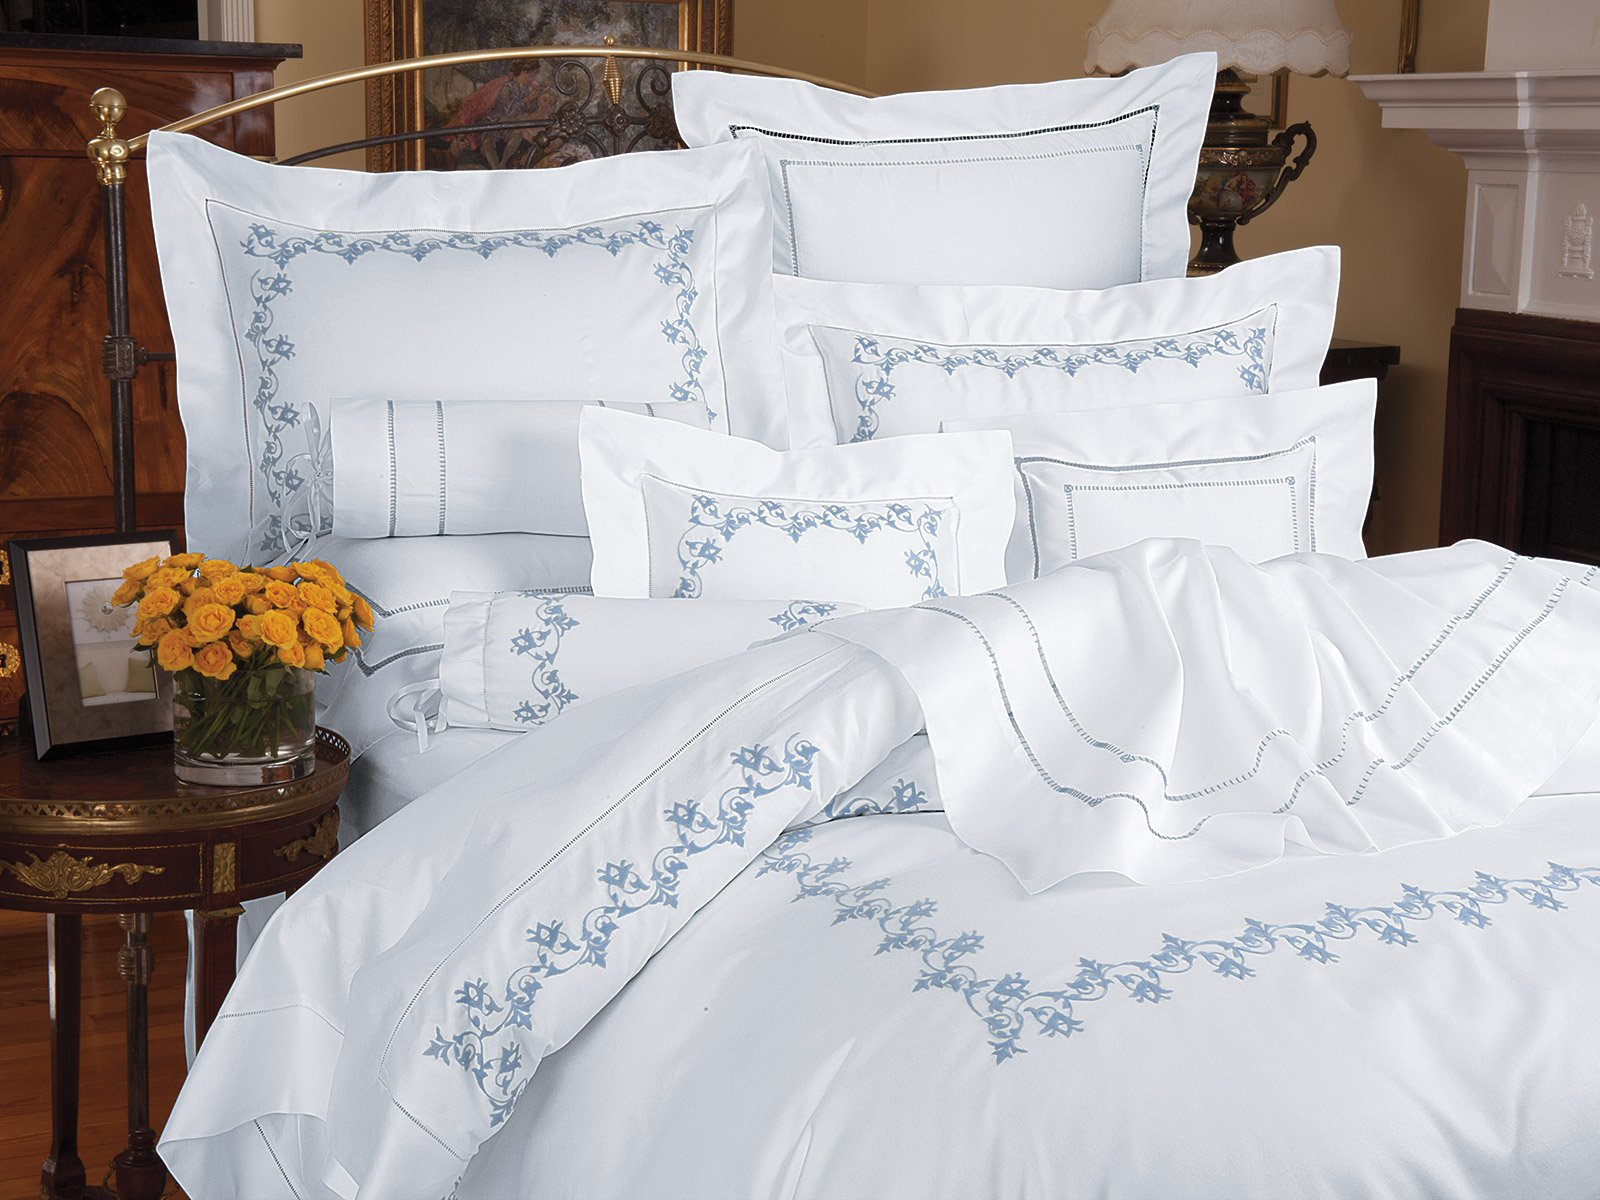 Flowering Vine Luxury Bedding Italian Bed Linens